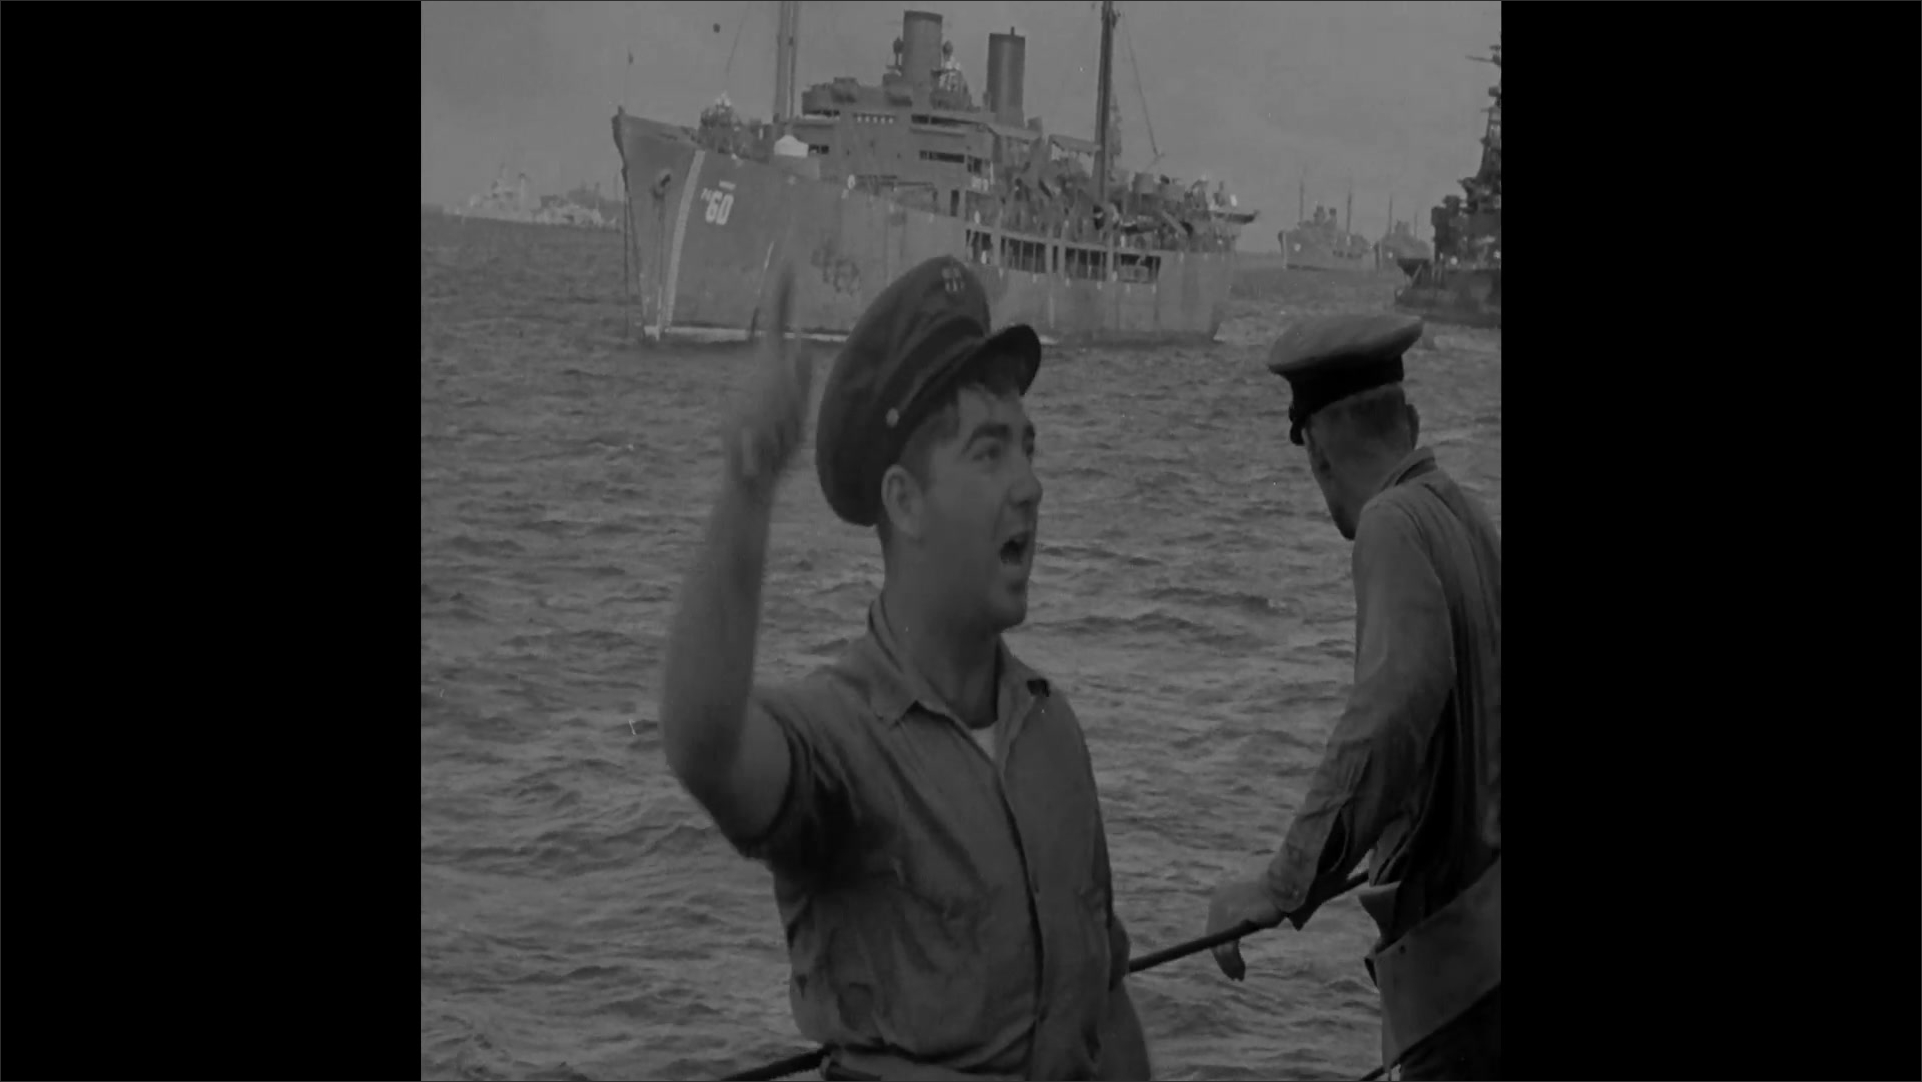 1940s: U.S. flag is raised on Navy ship. Sailors stand in salute. Officer talks to sailors, motioning above them.